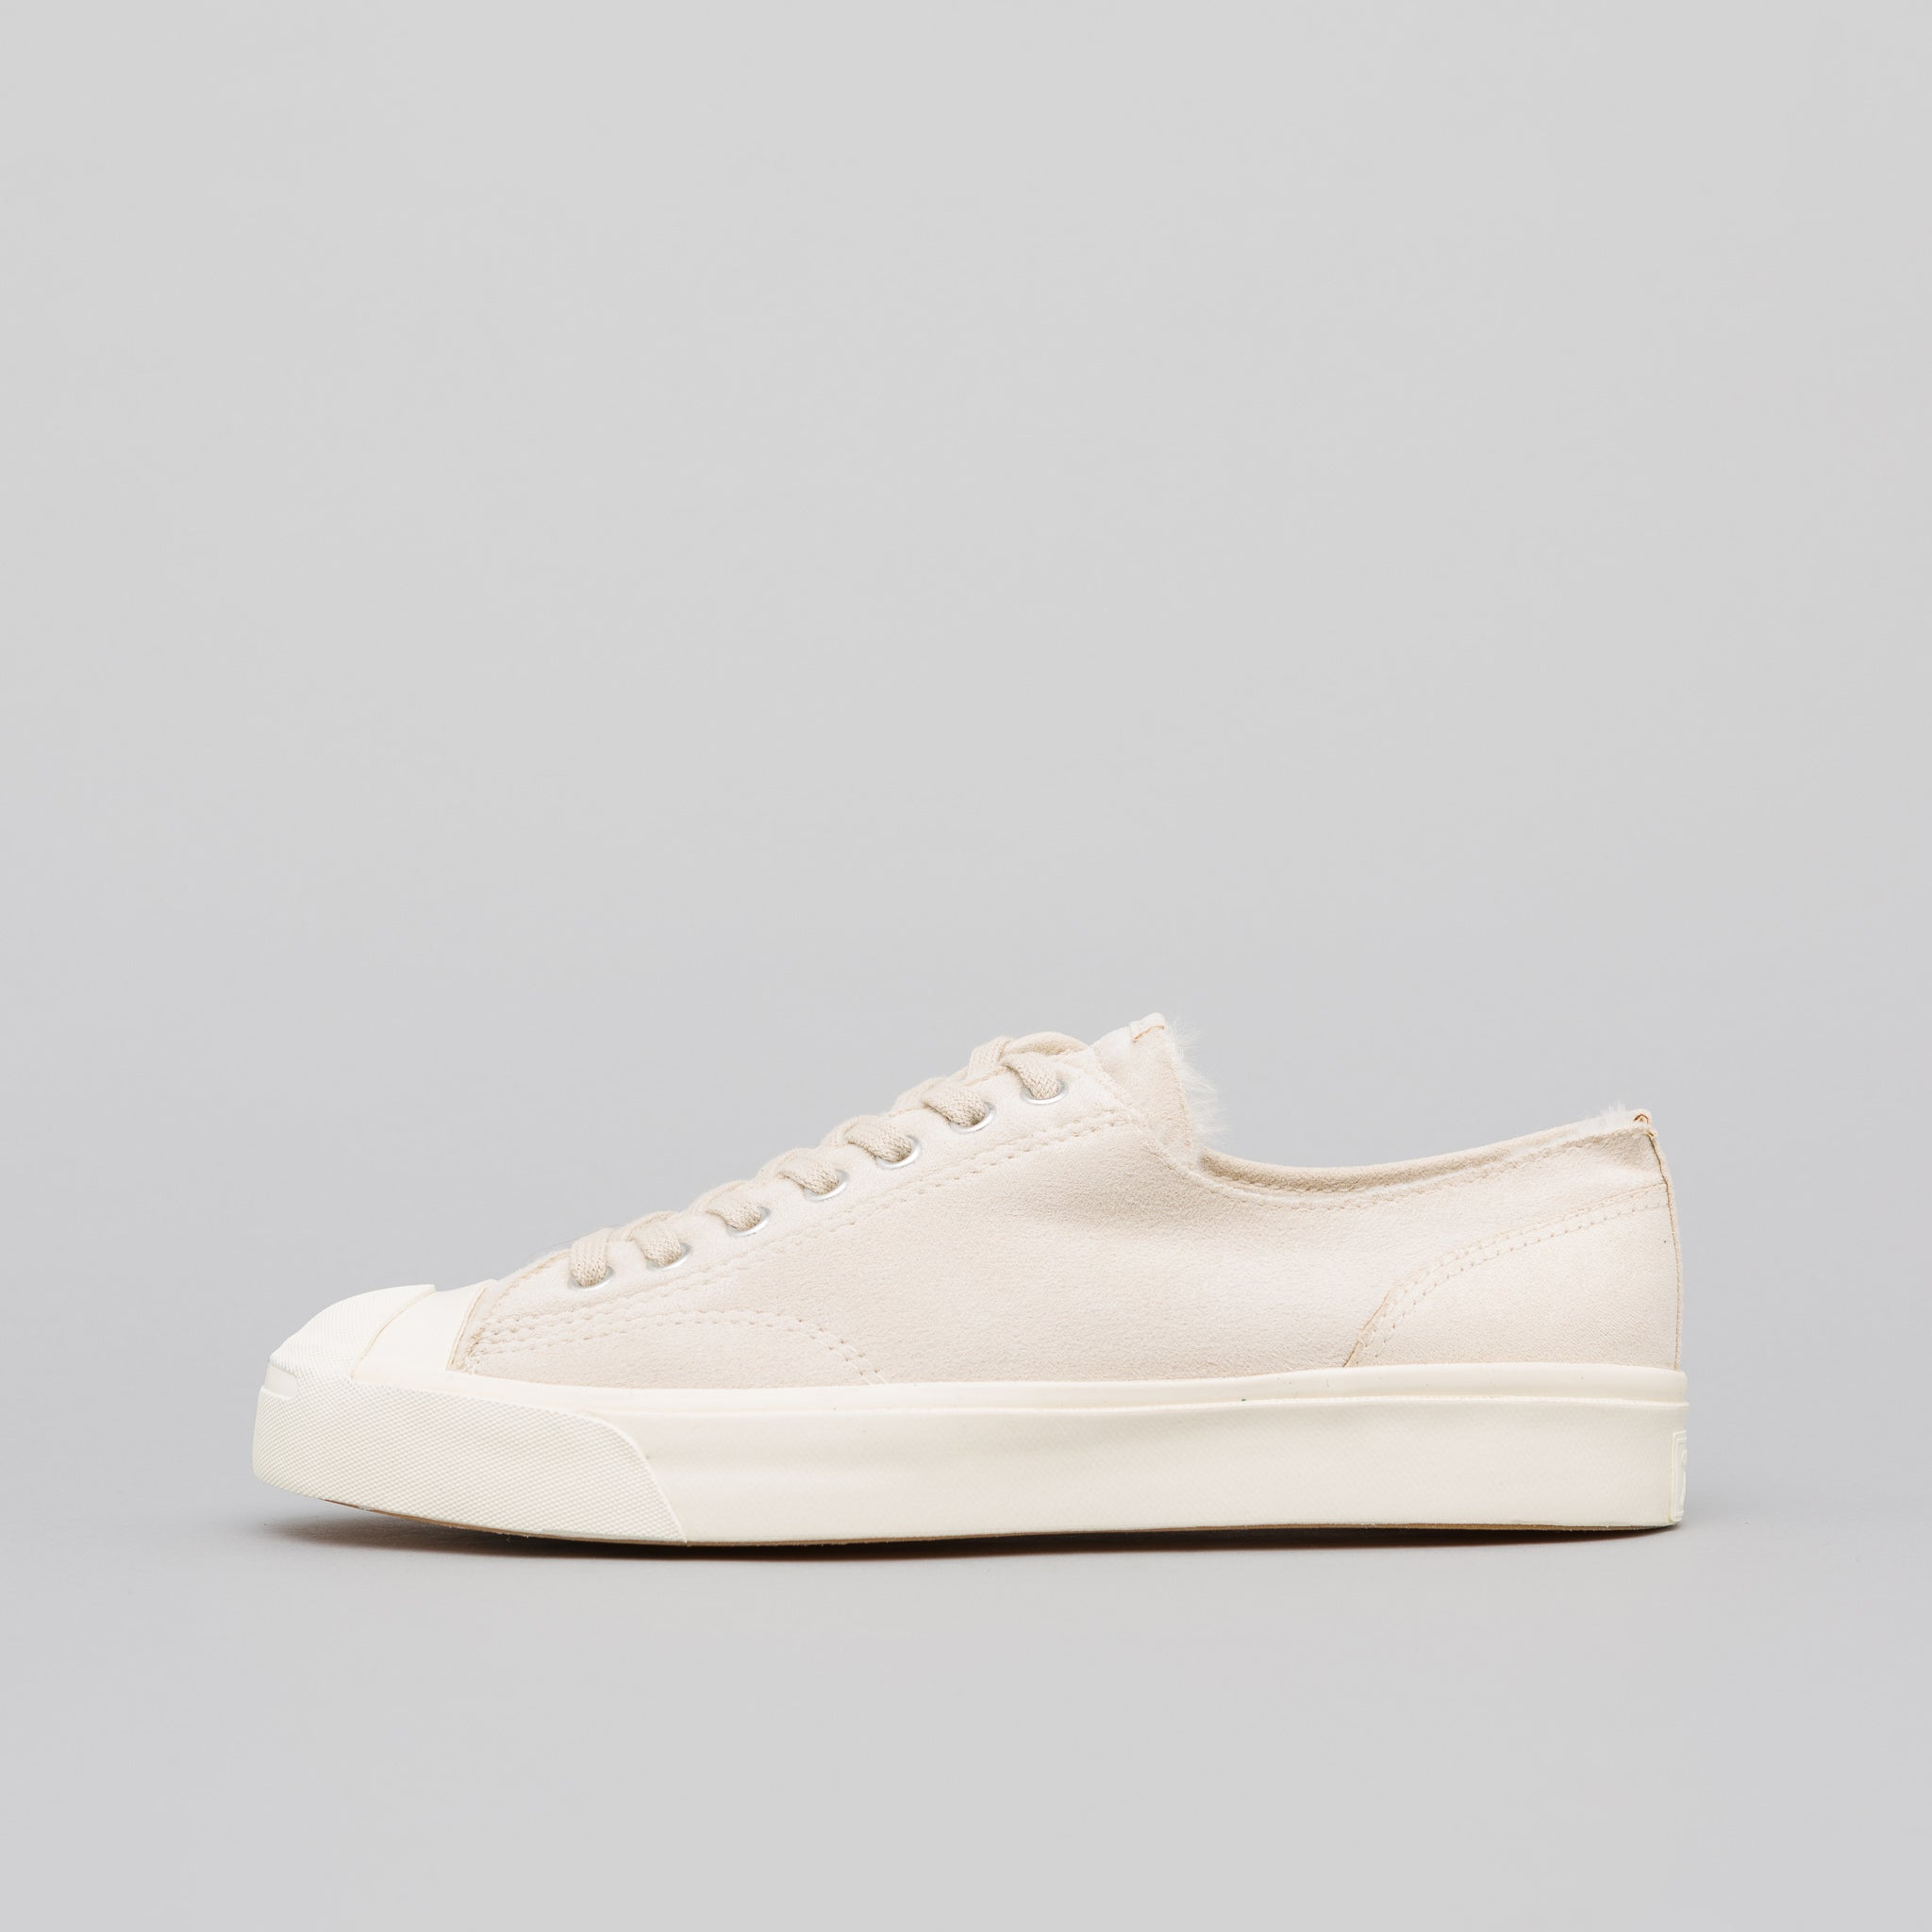 ec7562a2f8e9 ... greece x clot jack purcell ox in white swan. converse c5046 d4d28